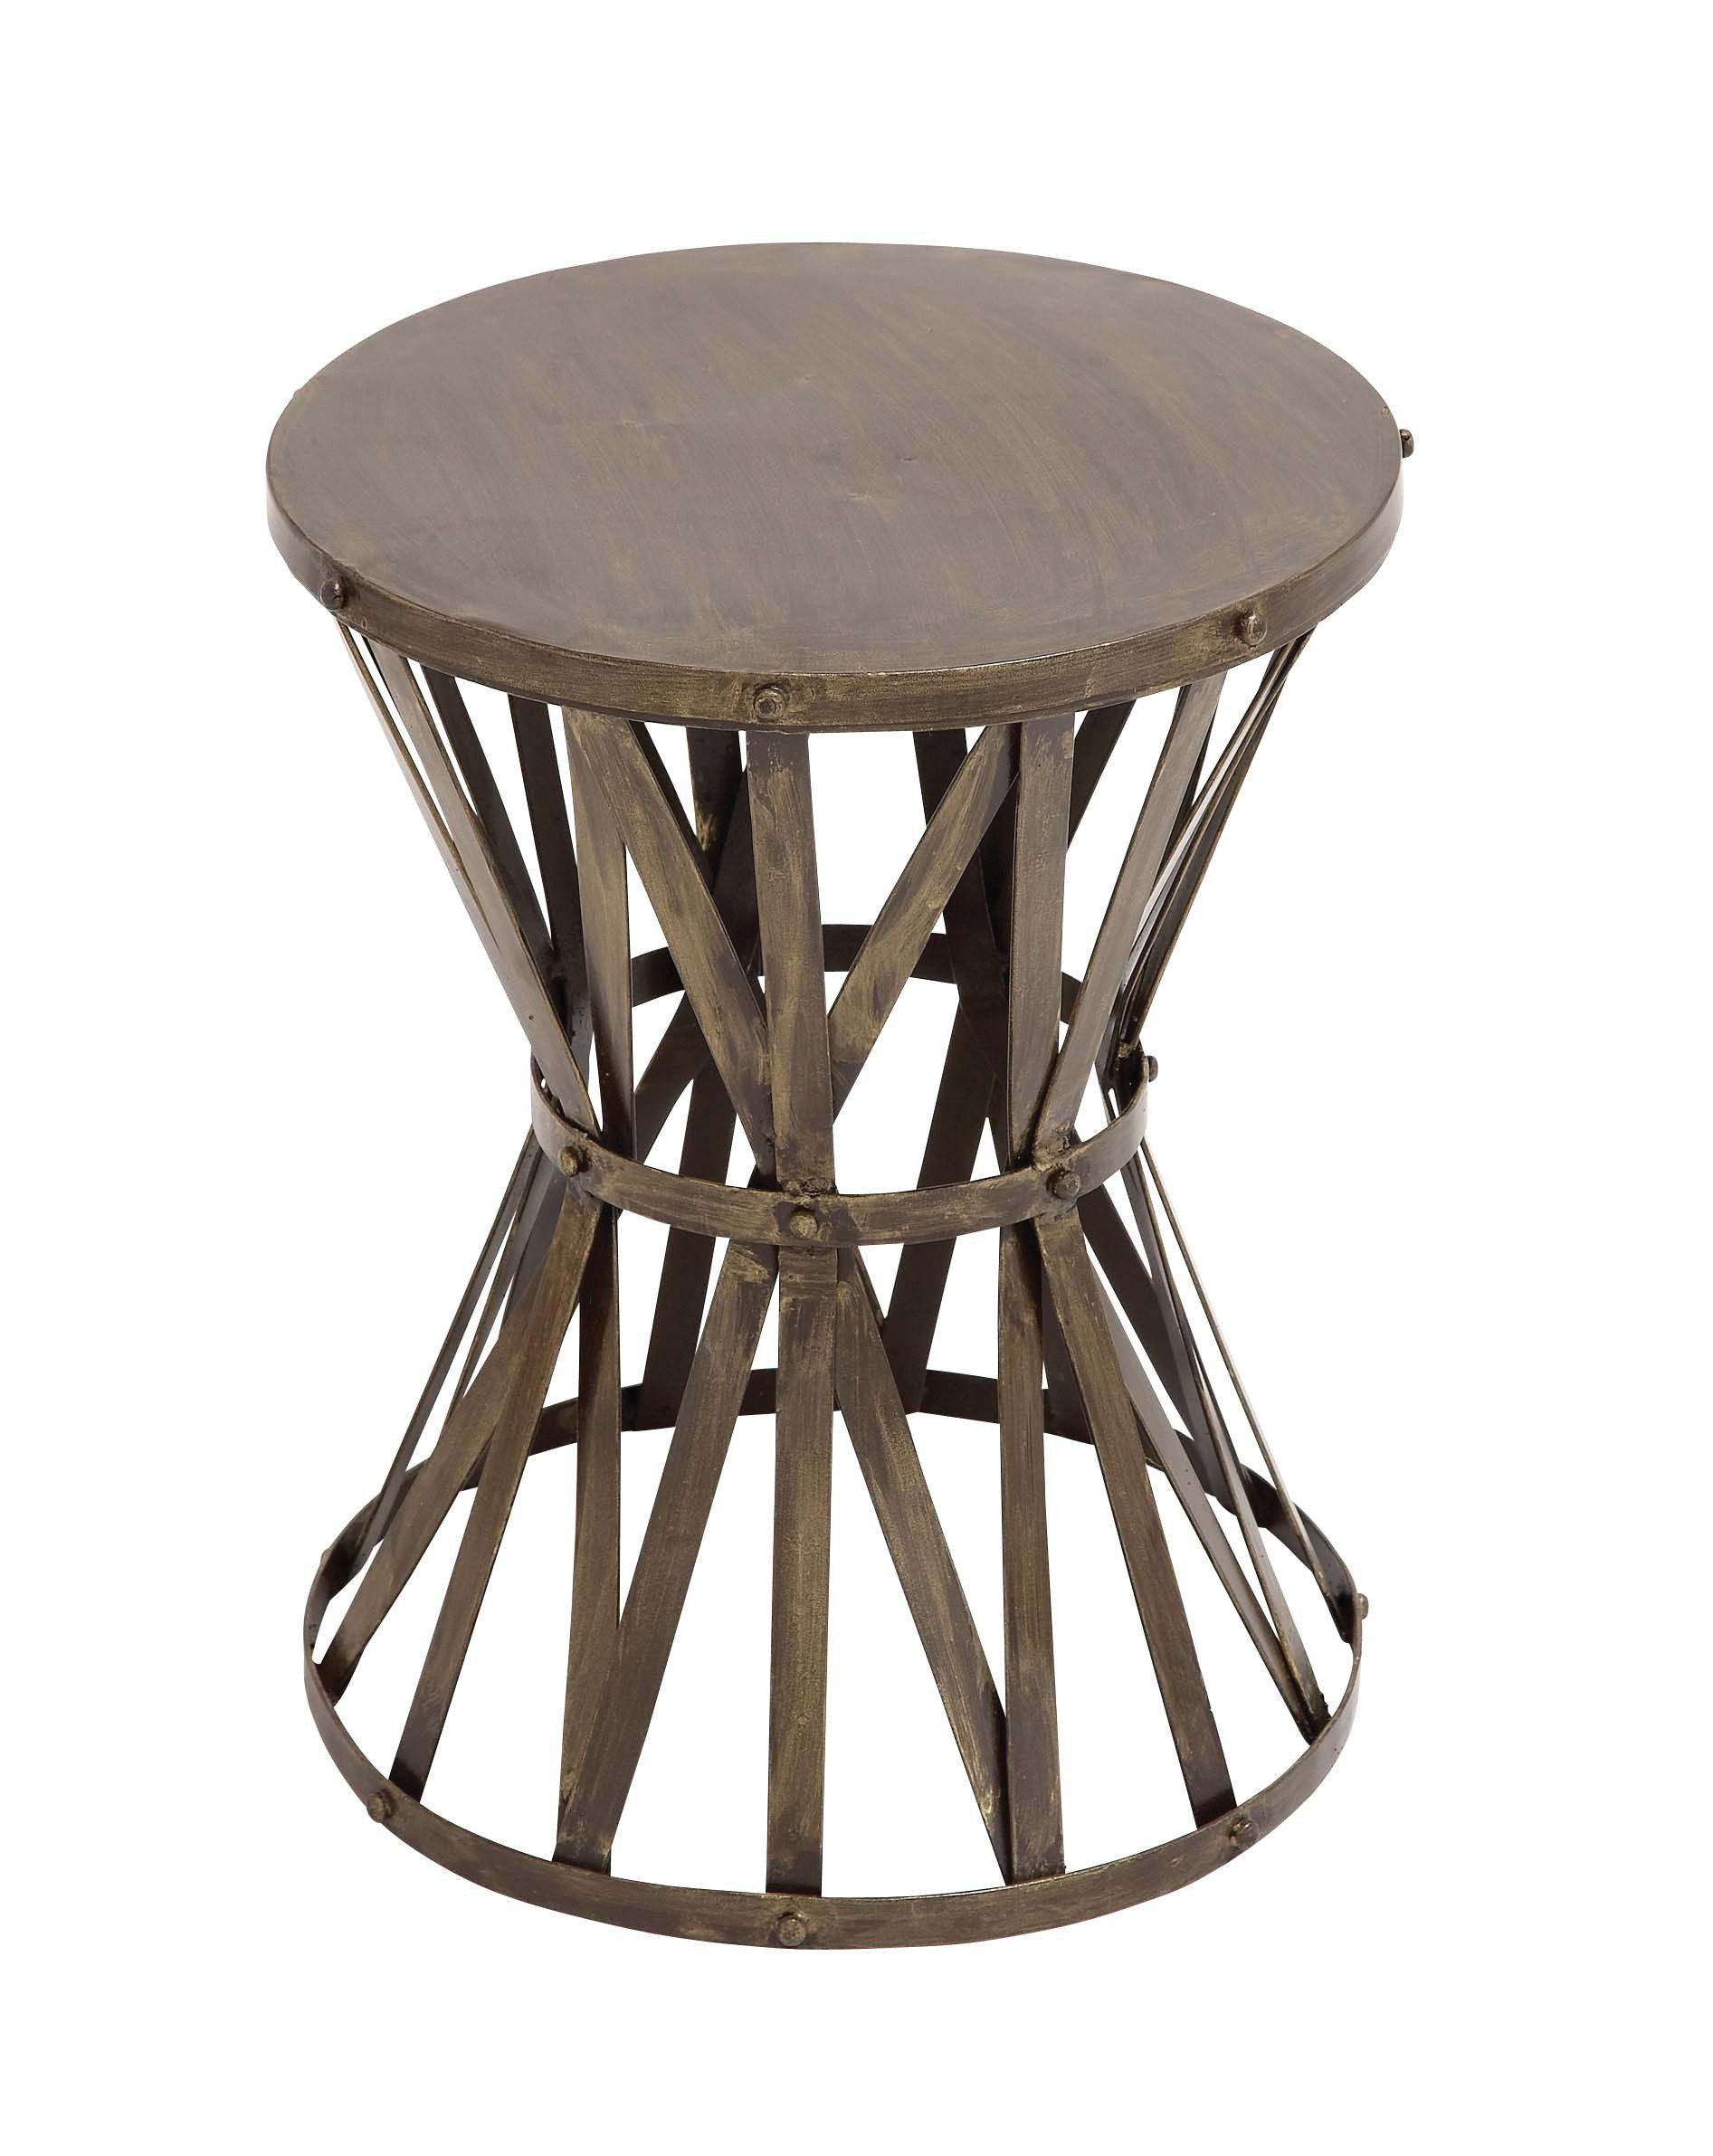 the rustic metal accent stool products accents table half circle hall round wood coffee with glass top cool bar cooler vintage lucite ikea lack bedroom light shades house